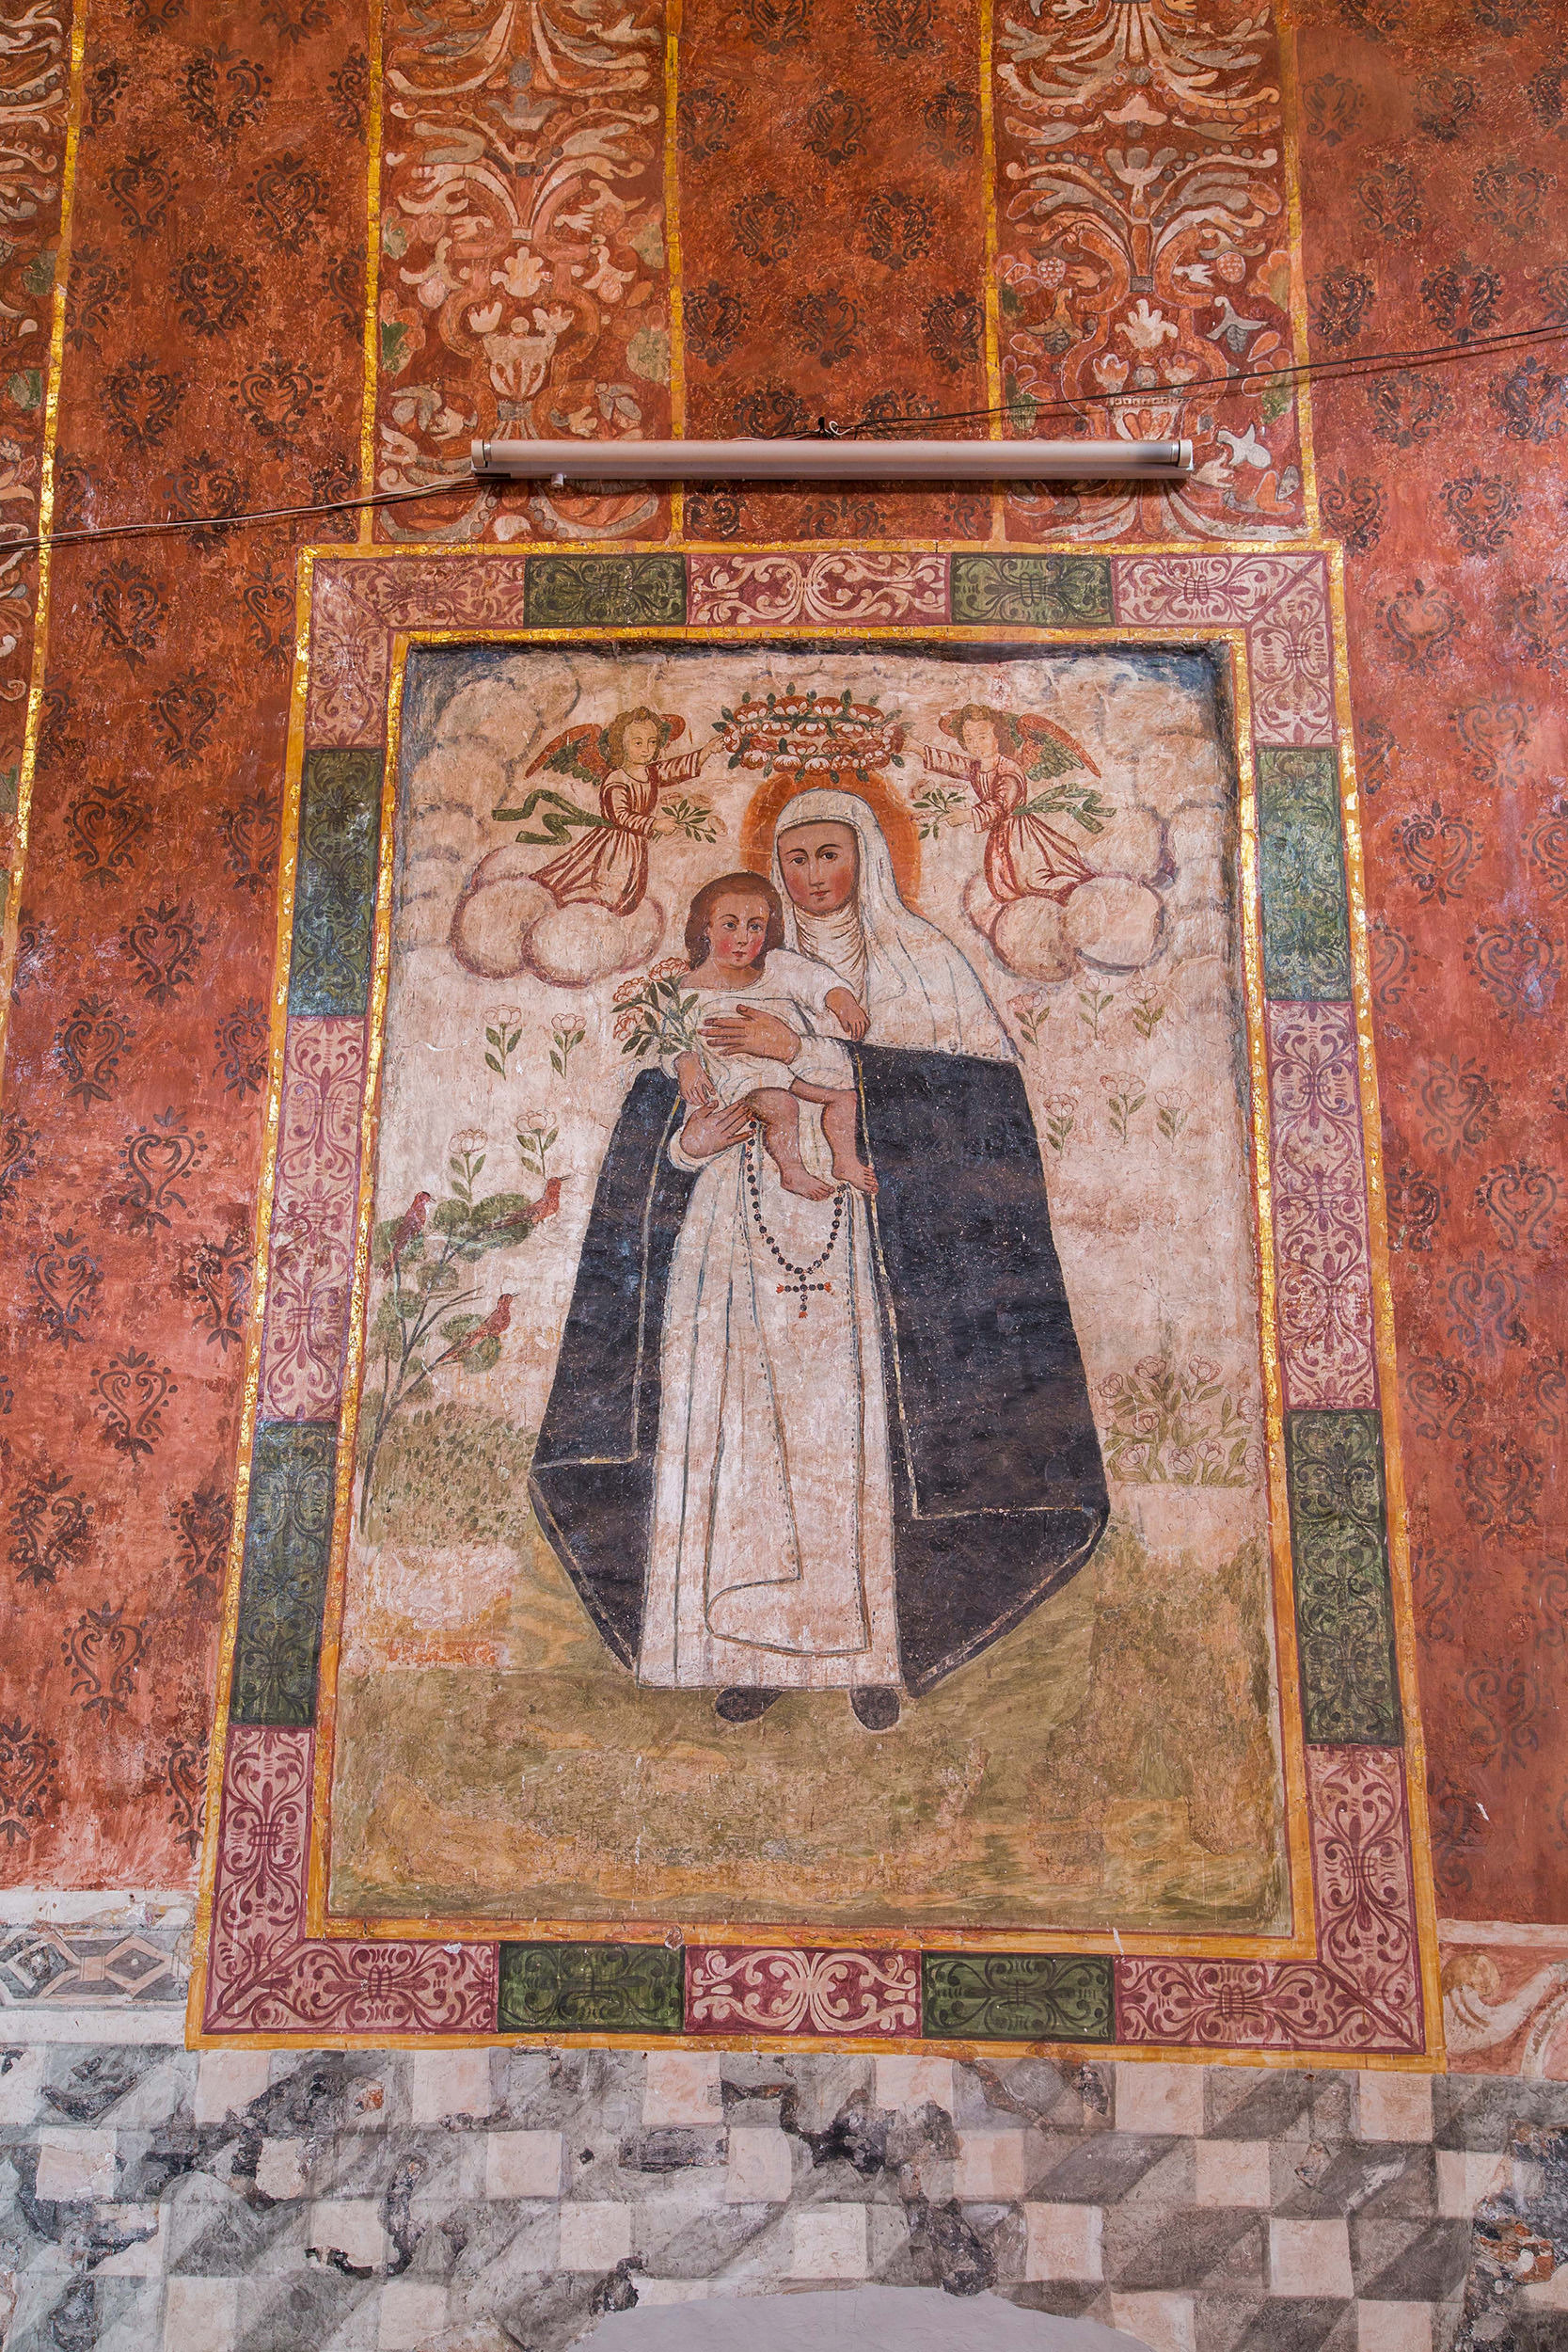 Fig. 24 Detail, textile mural of St. Rose of Lima surrounded by a cloth frame and set against damask hangings. Note the similarities in the frame design with the example from Oropesa. Church of Cai-Cai, Paucartambo Province, late 17th or early 18th century. Photo by Raúl Montero Quispe.